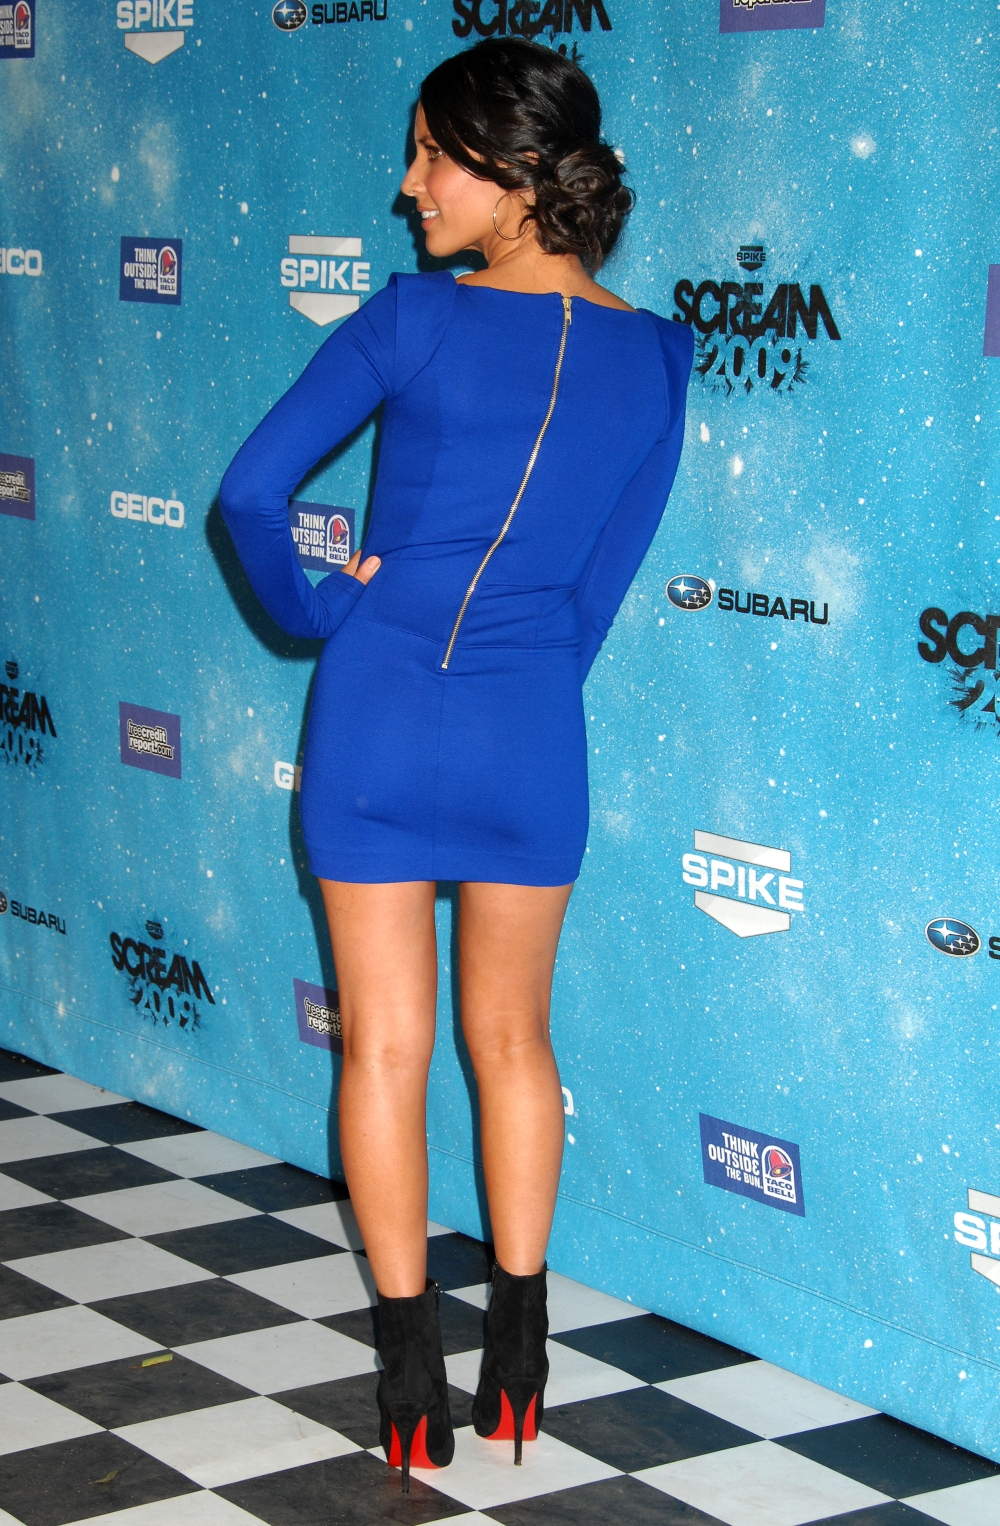 Olivia Munn Has Great Legs In A Tight Blue Dress And High Heel Ankle